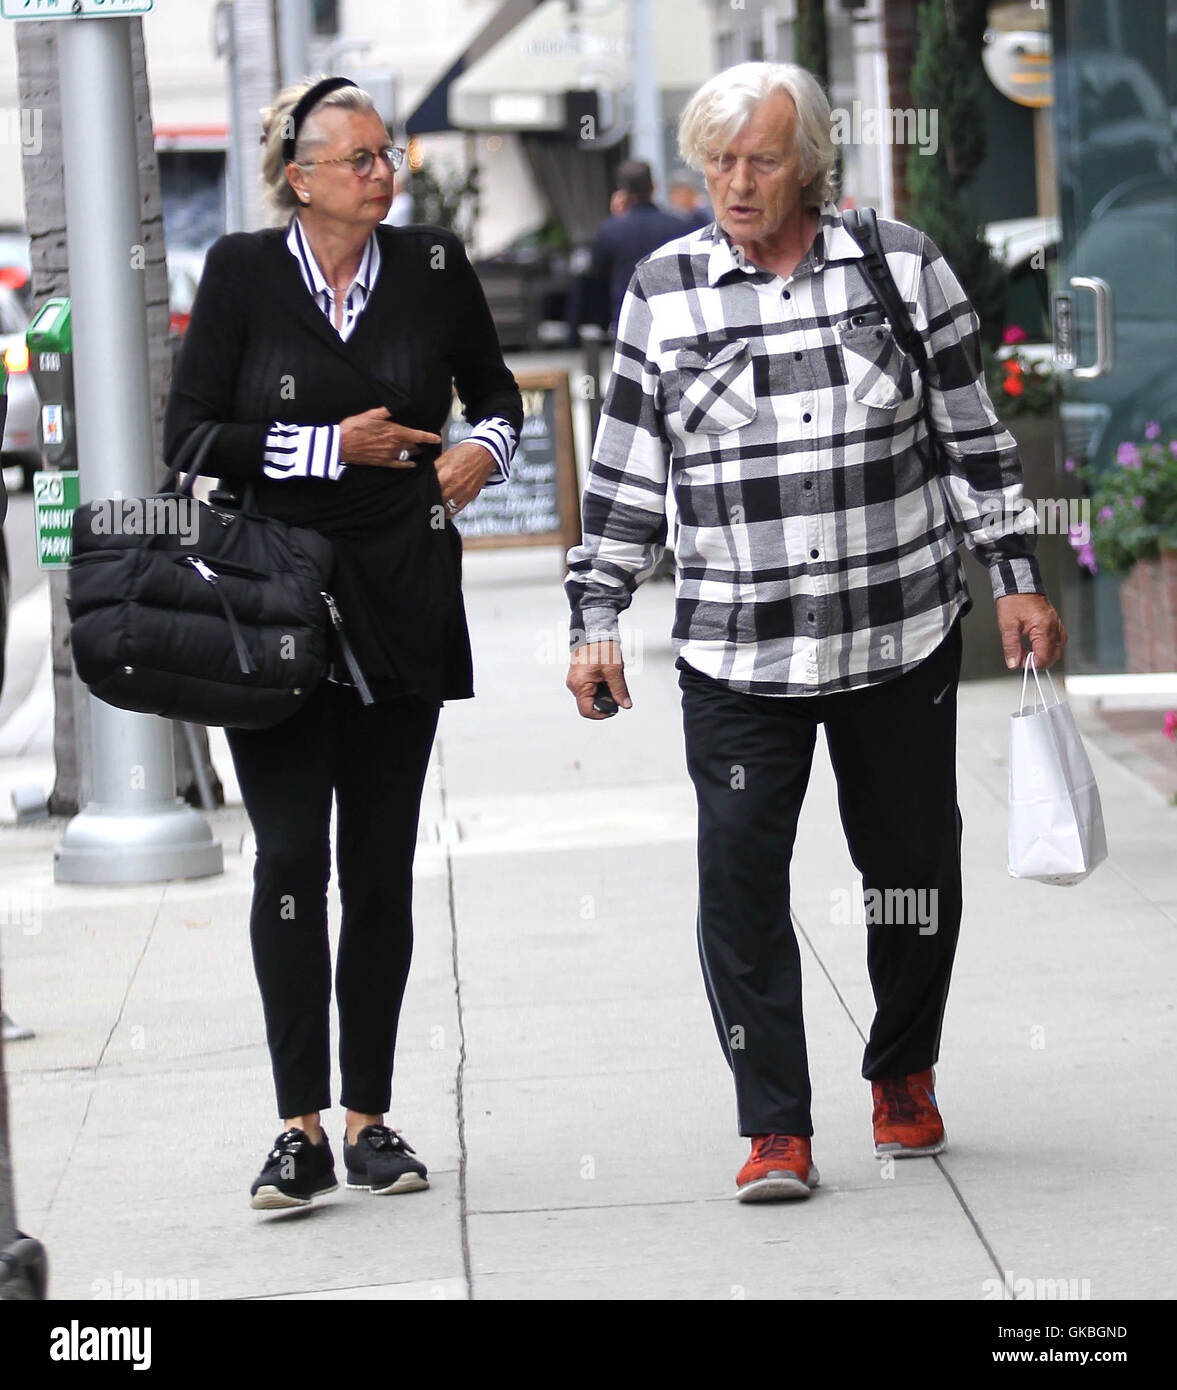 https://c8.alamy.com/comp/GKBGND/rutger-hauer-and-his-wife-go-shopping-in-beverly-hills-featuring-rutger-GKBGND.jpg